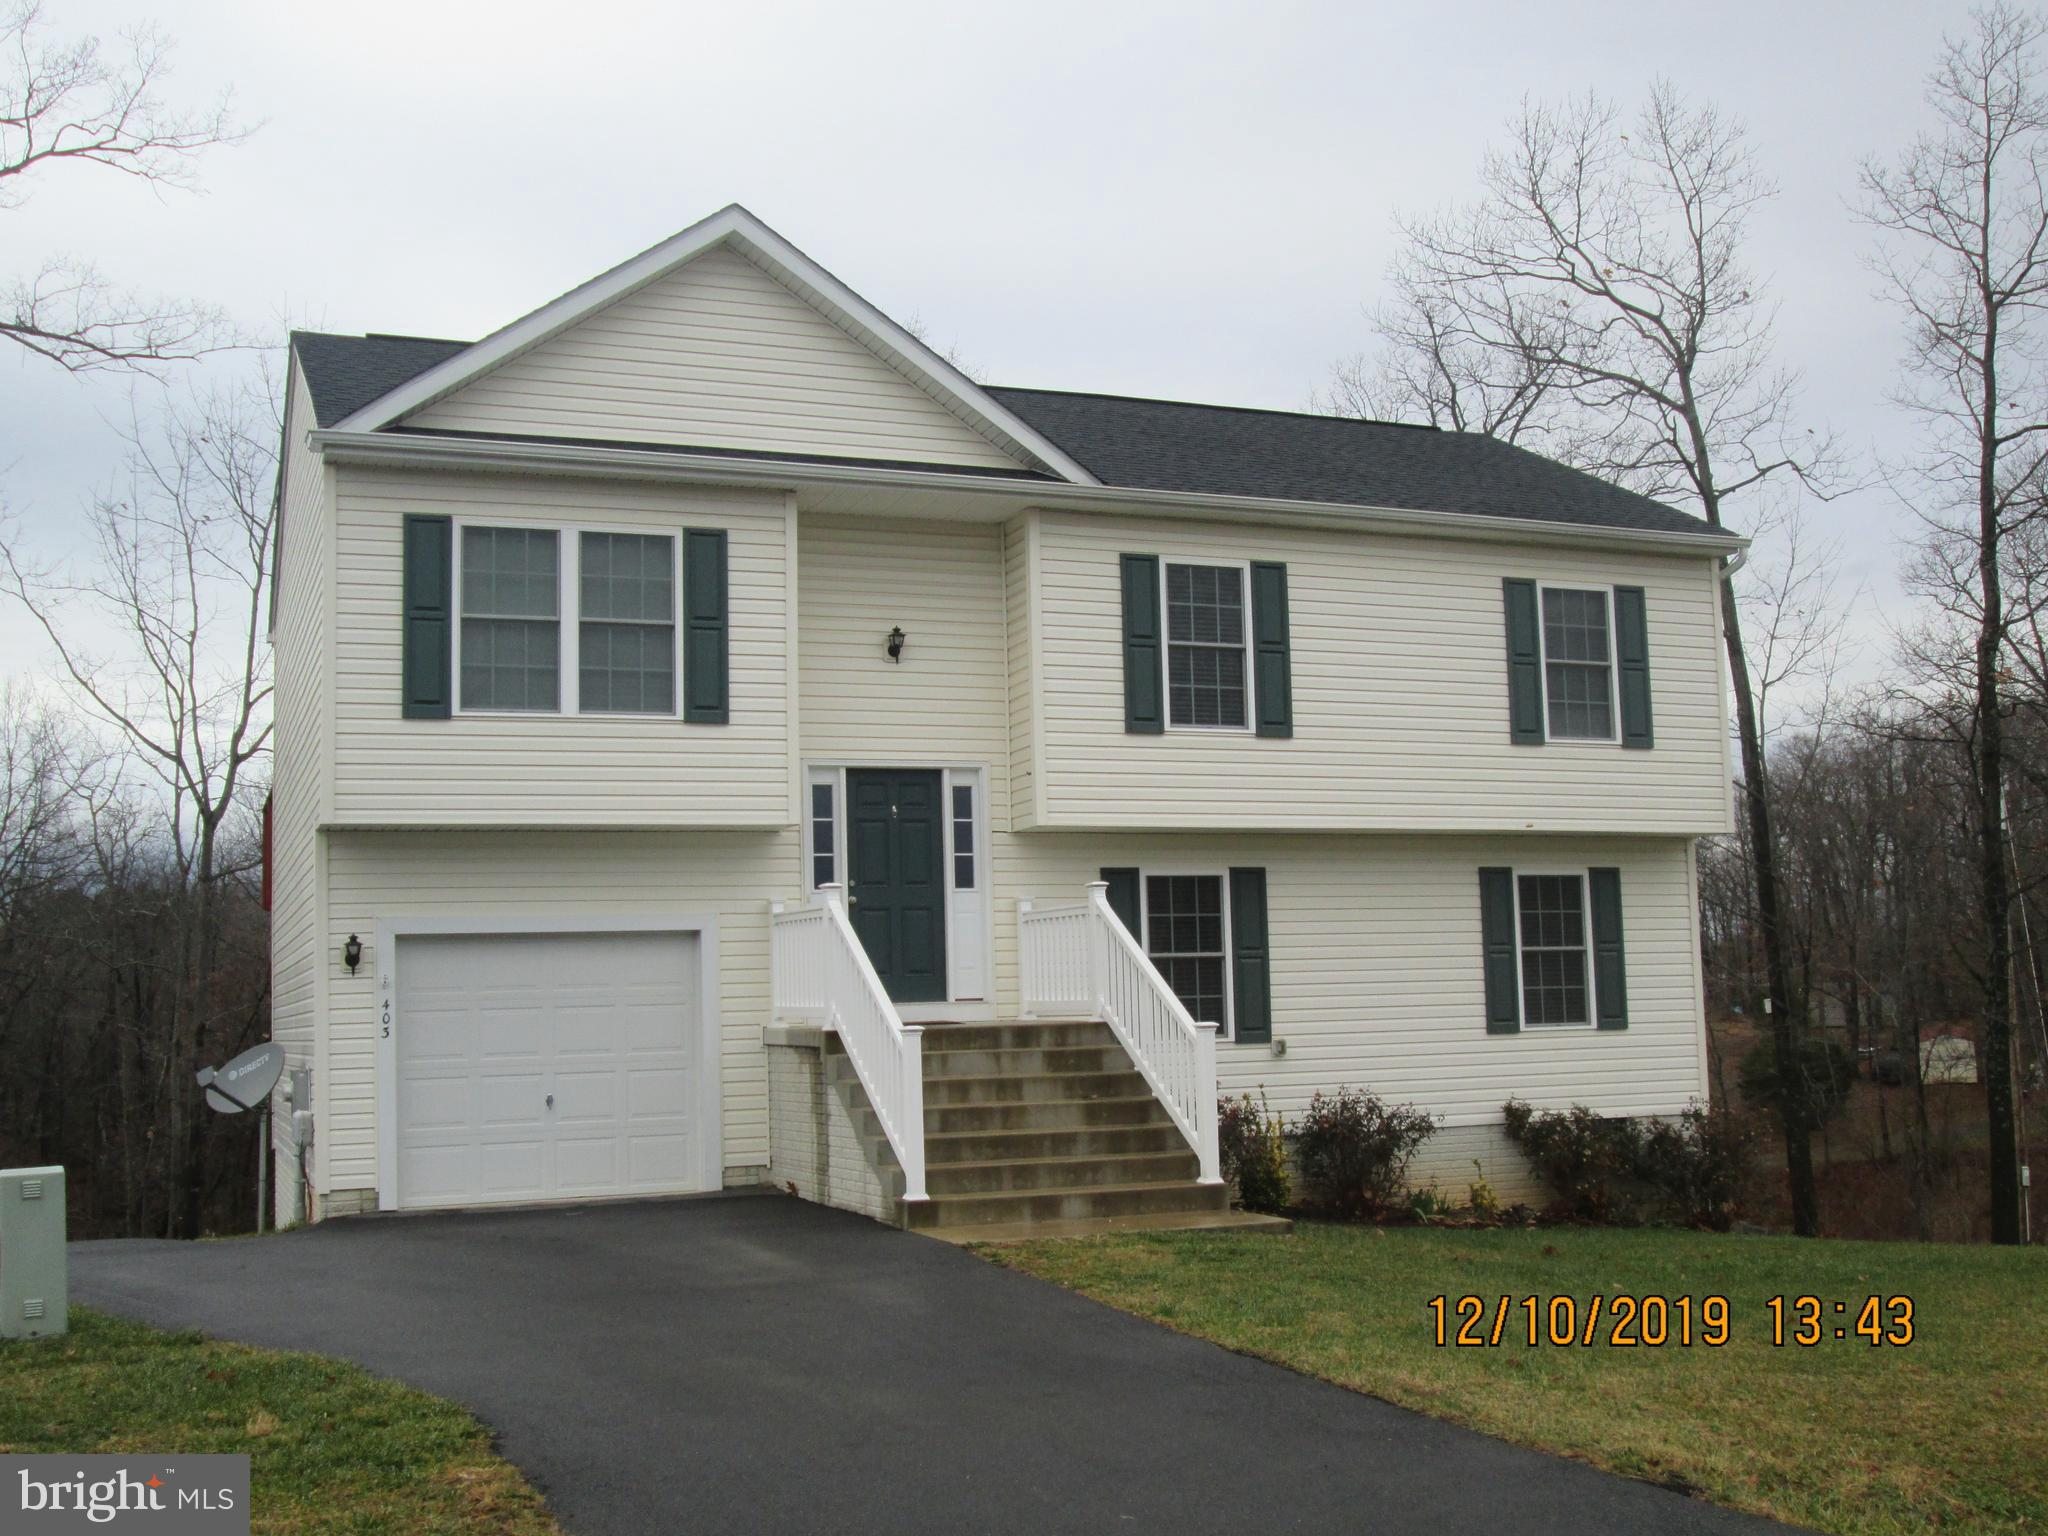 This 4 BR, 3 full bath split foyer home is just like new! Spacious home is move in ready. Features a